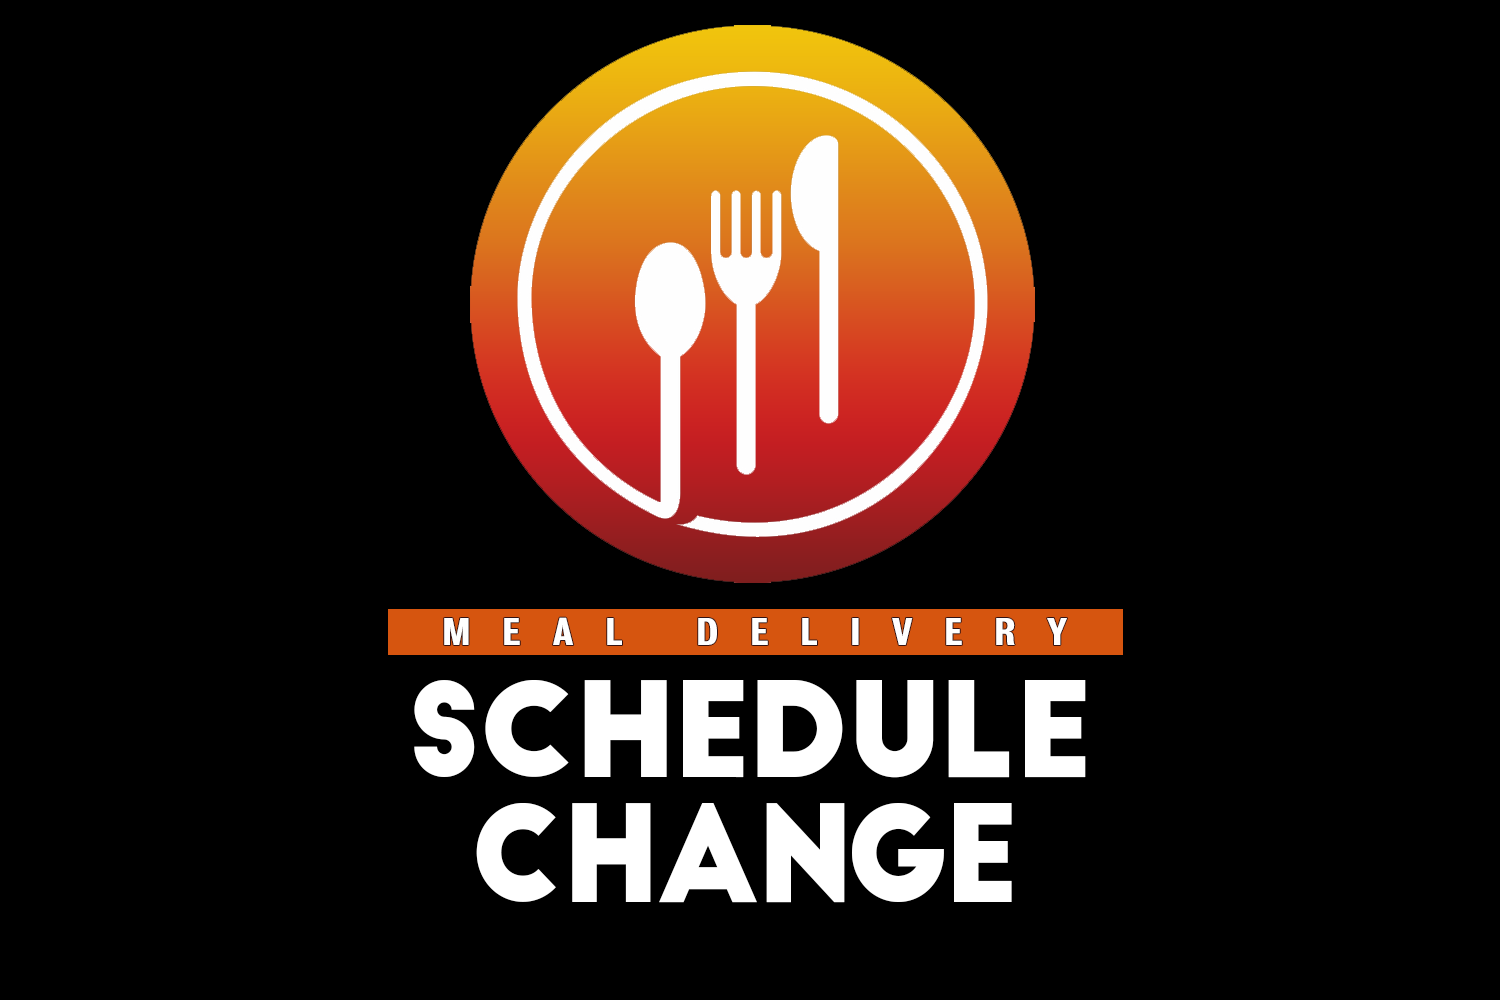 Meal delivery change graphic